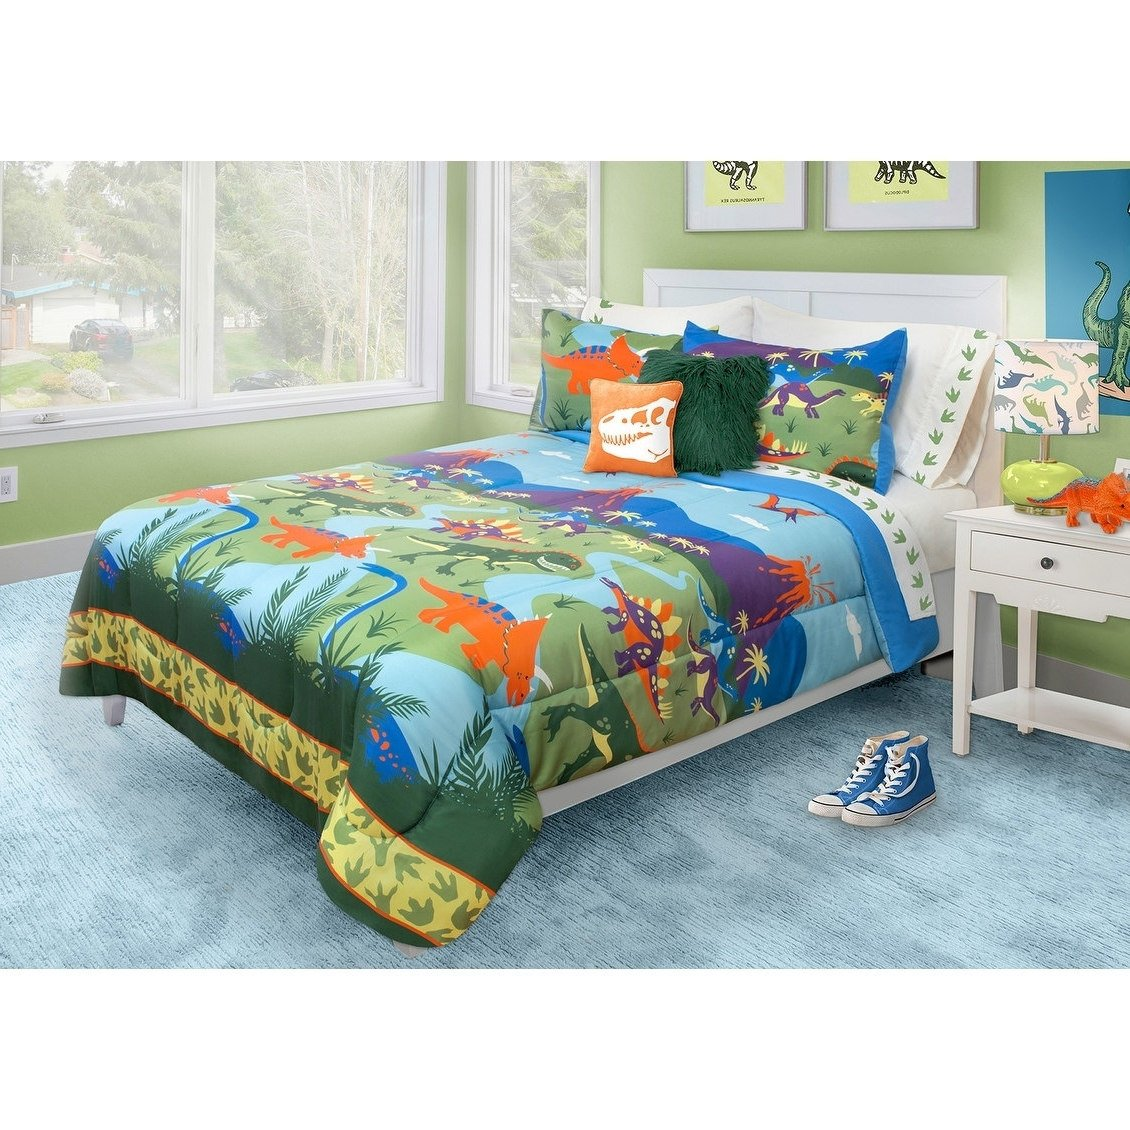 3 Piece Kids Blue Green Yellow Orange Dinosaur Themed Comforter Full Queen Set